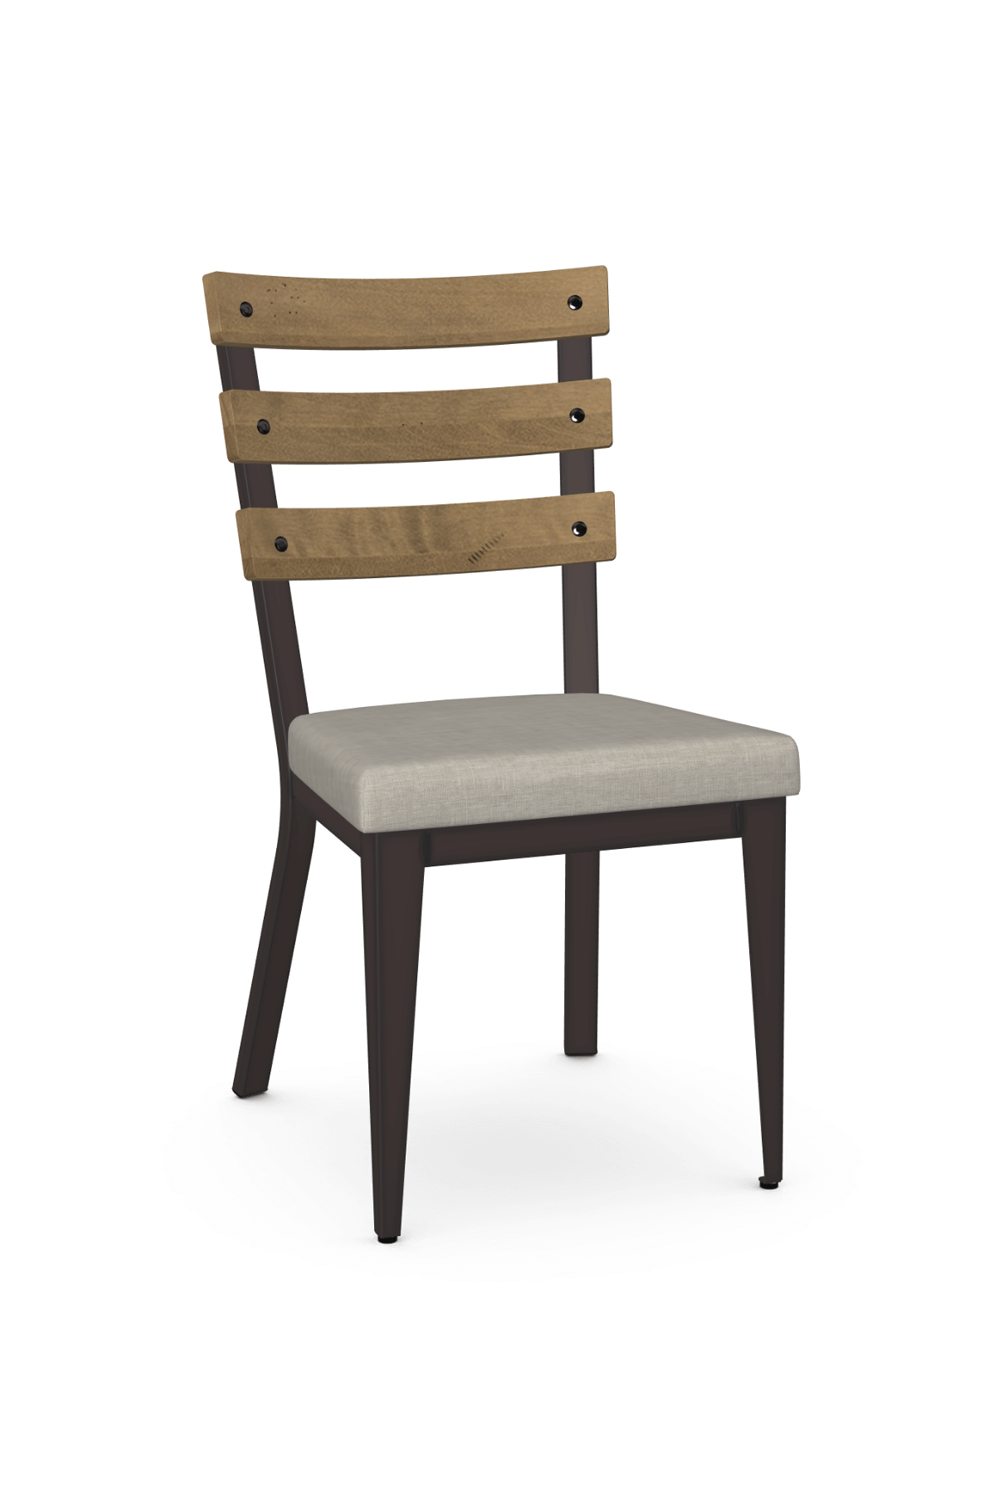 Amisco's Dexter Dining Chair with Seat Cushion